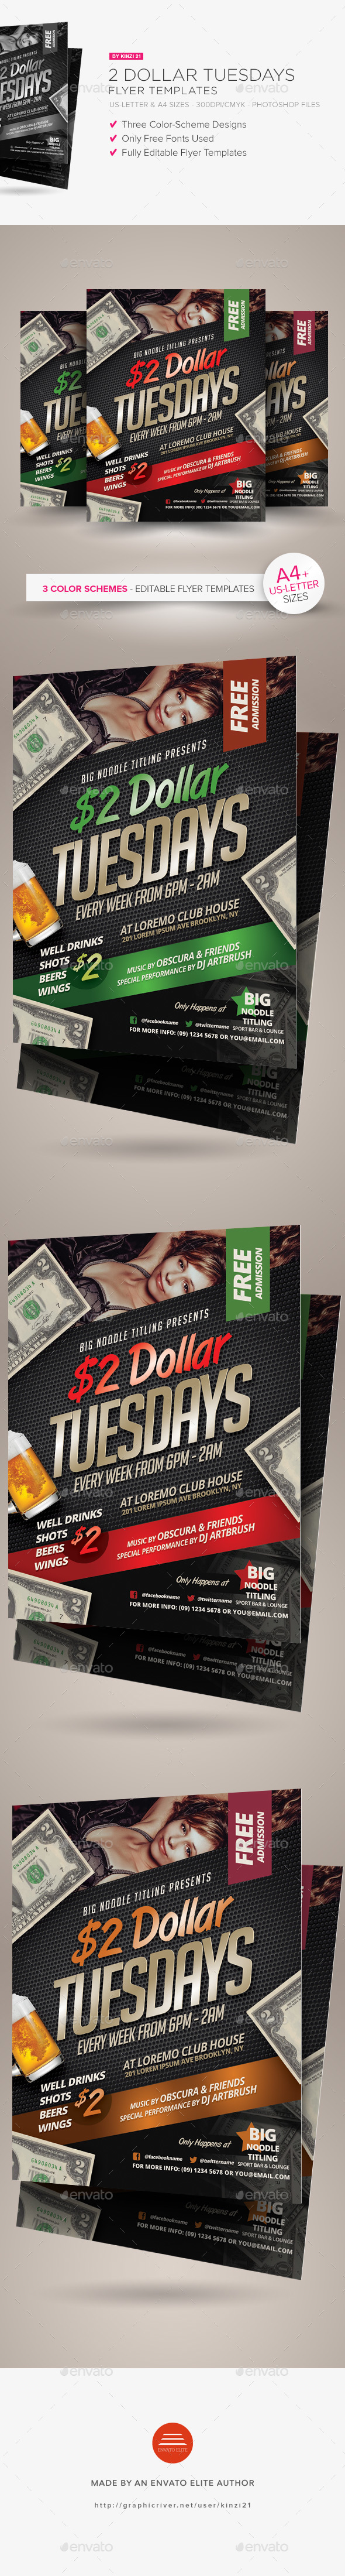 2 Dollar Tuesdays Flyer Templates - Clubs & Parties Events